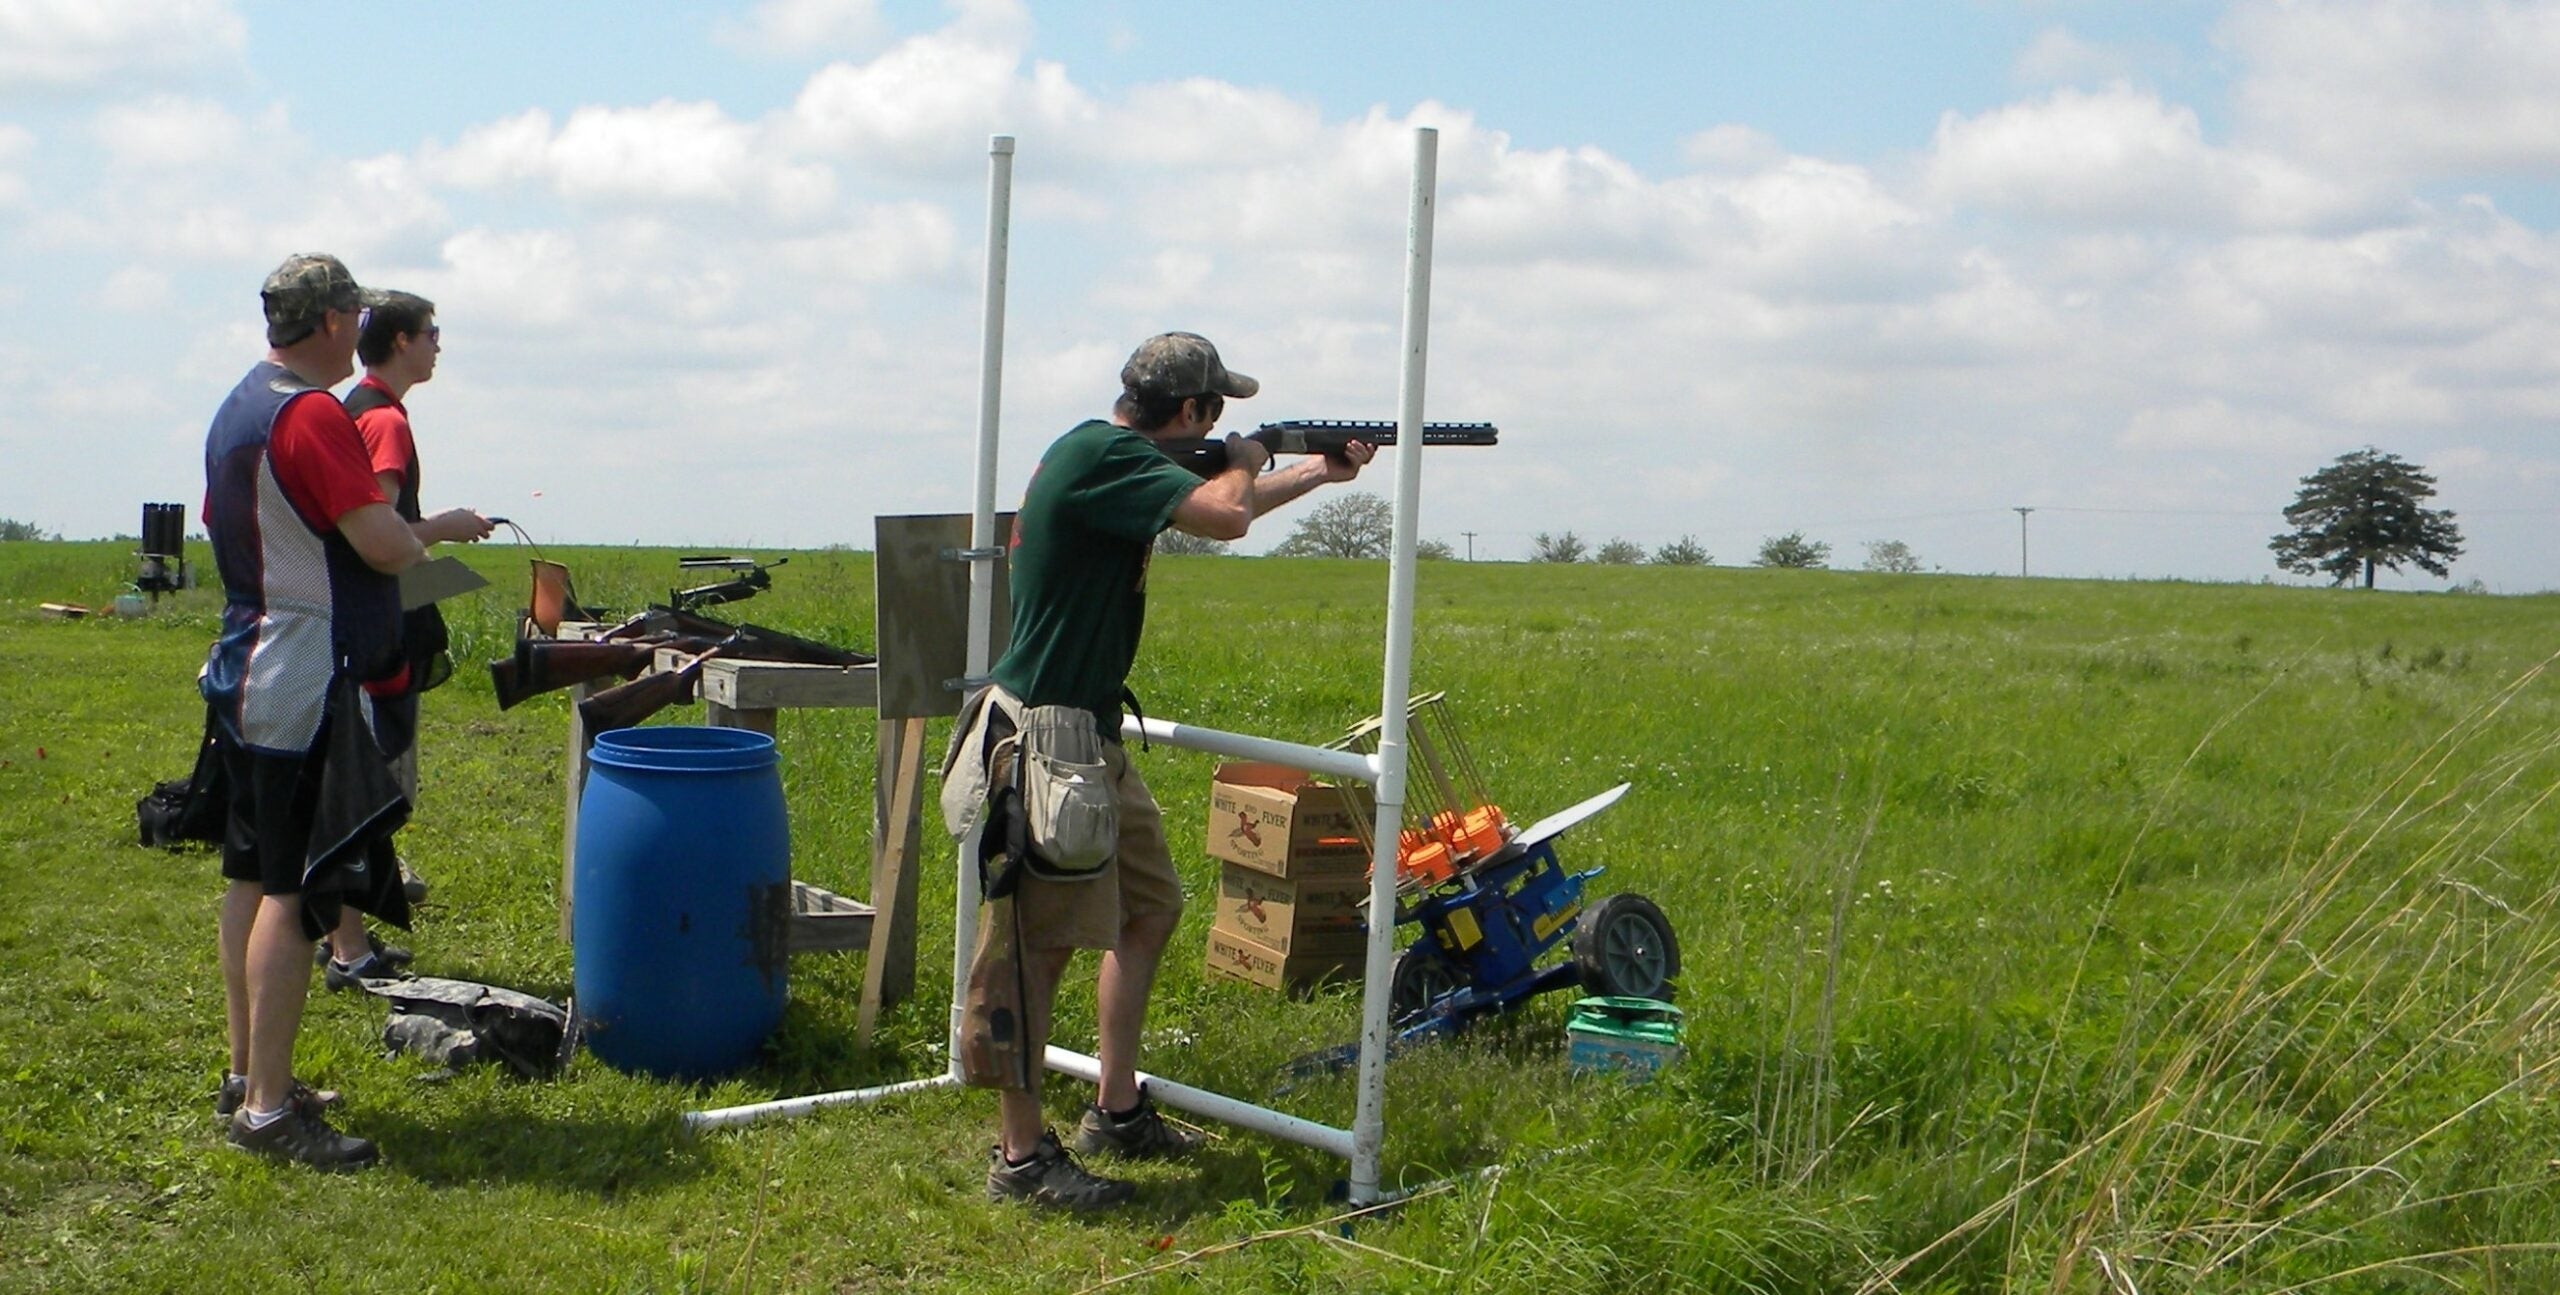 Gun Club Etiquette for Trap, Skeet, and Sporting Clays